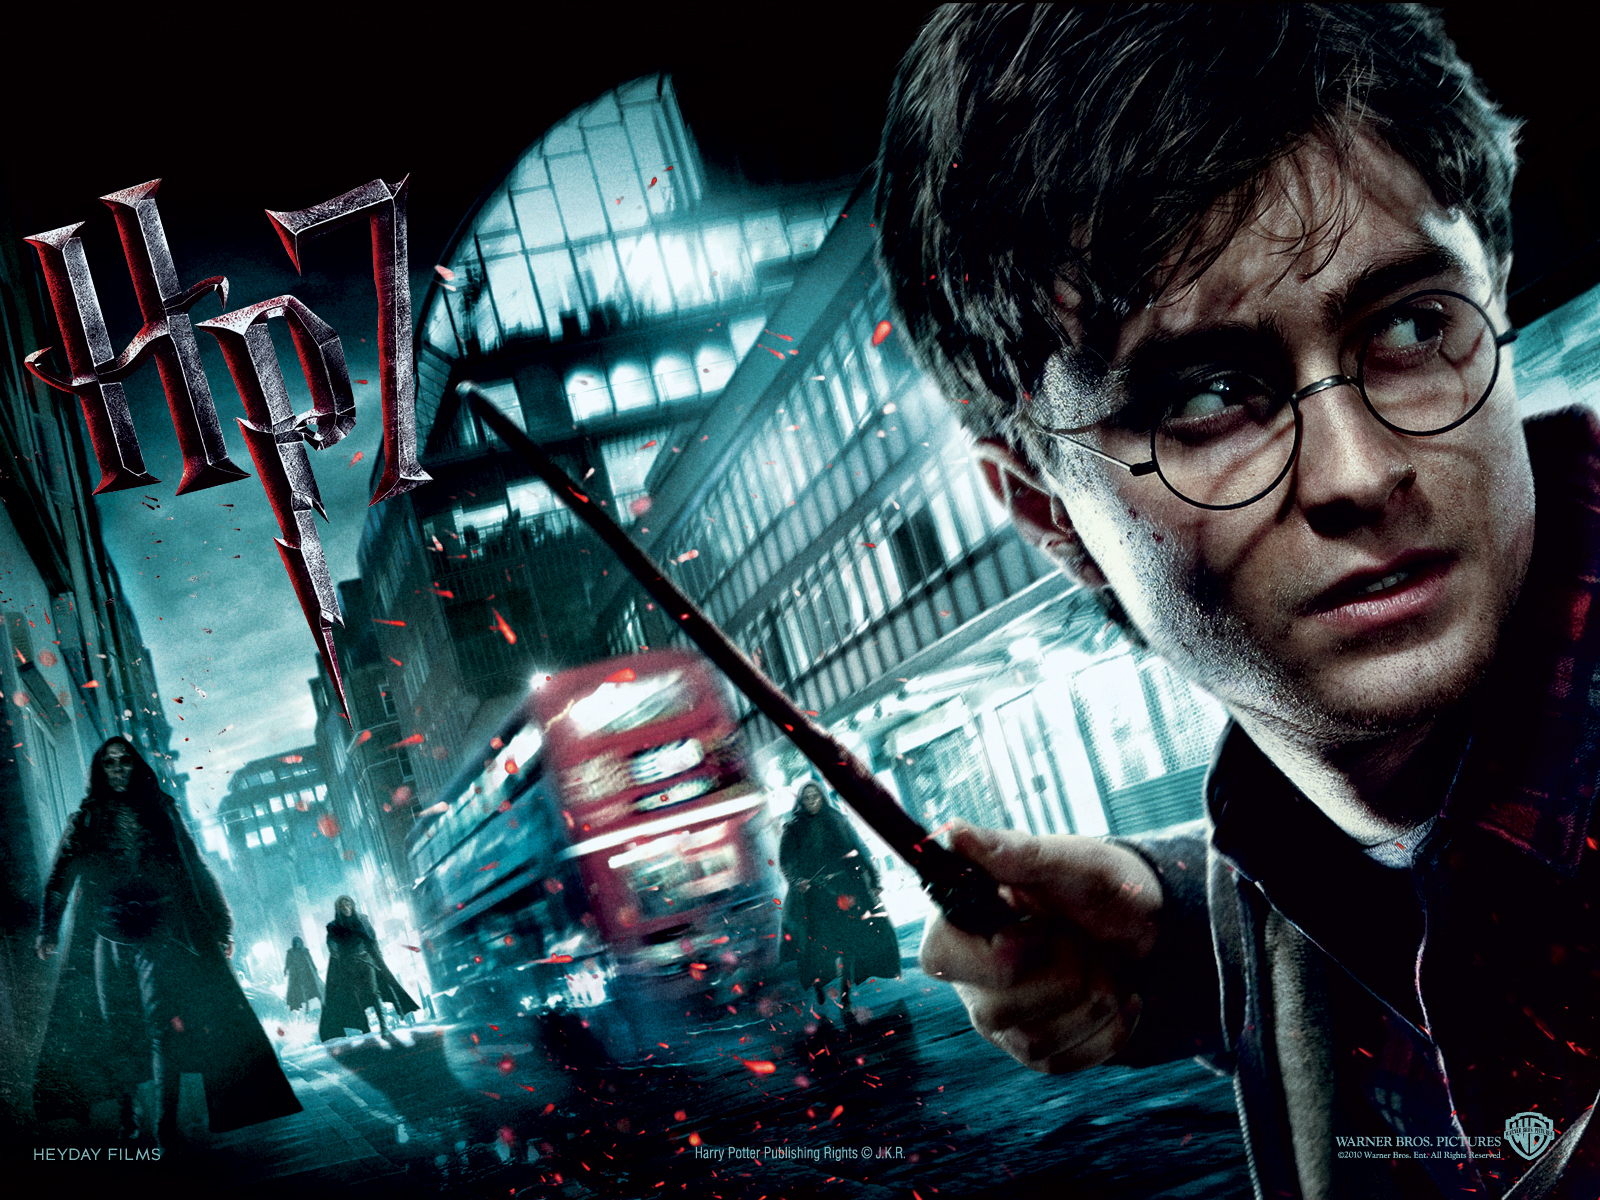 harry potter and the deathly hallows movies images official - harry